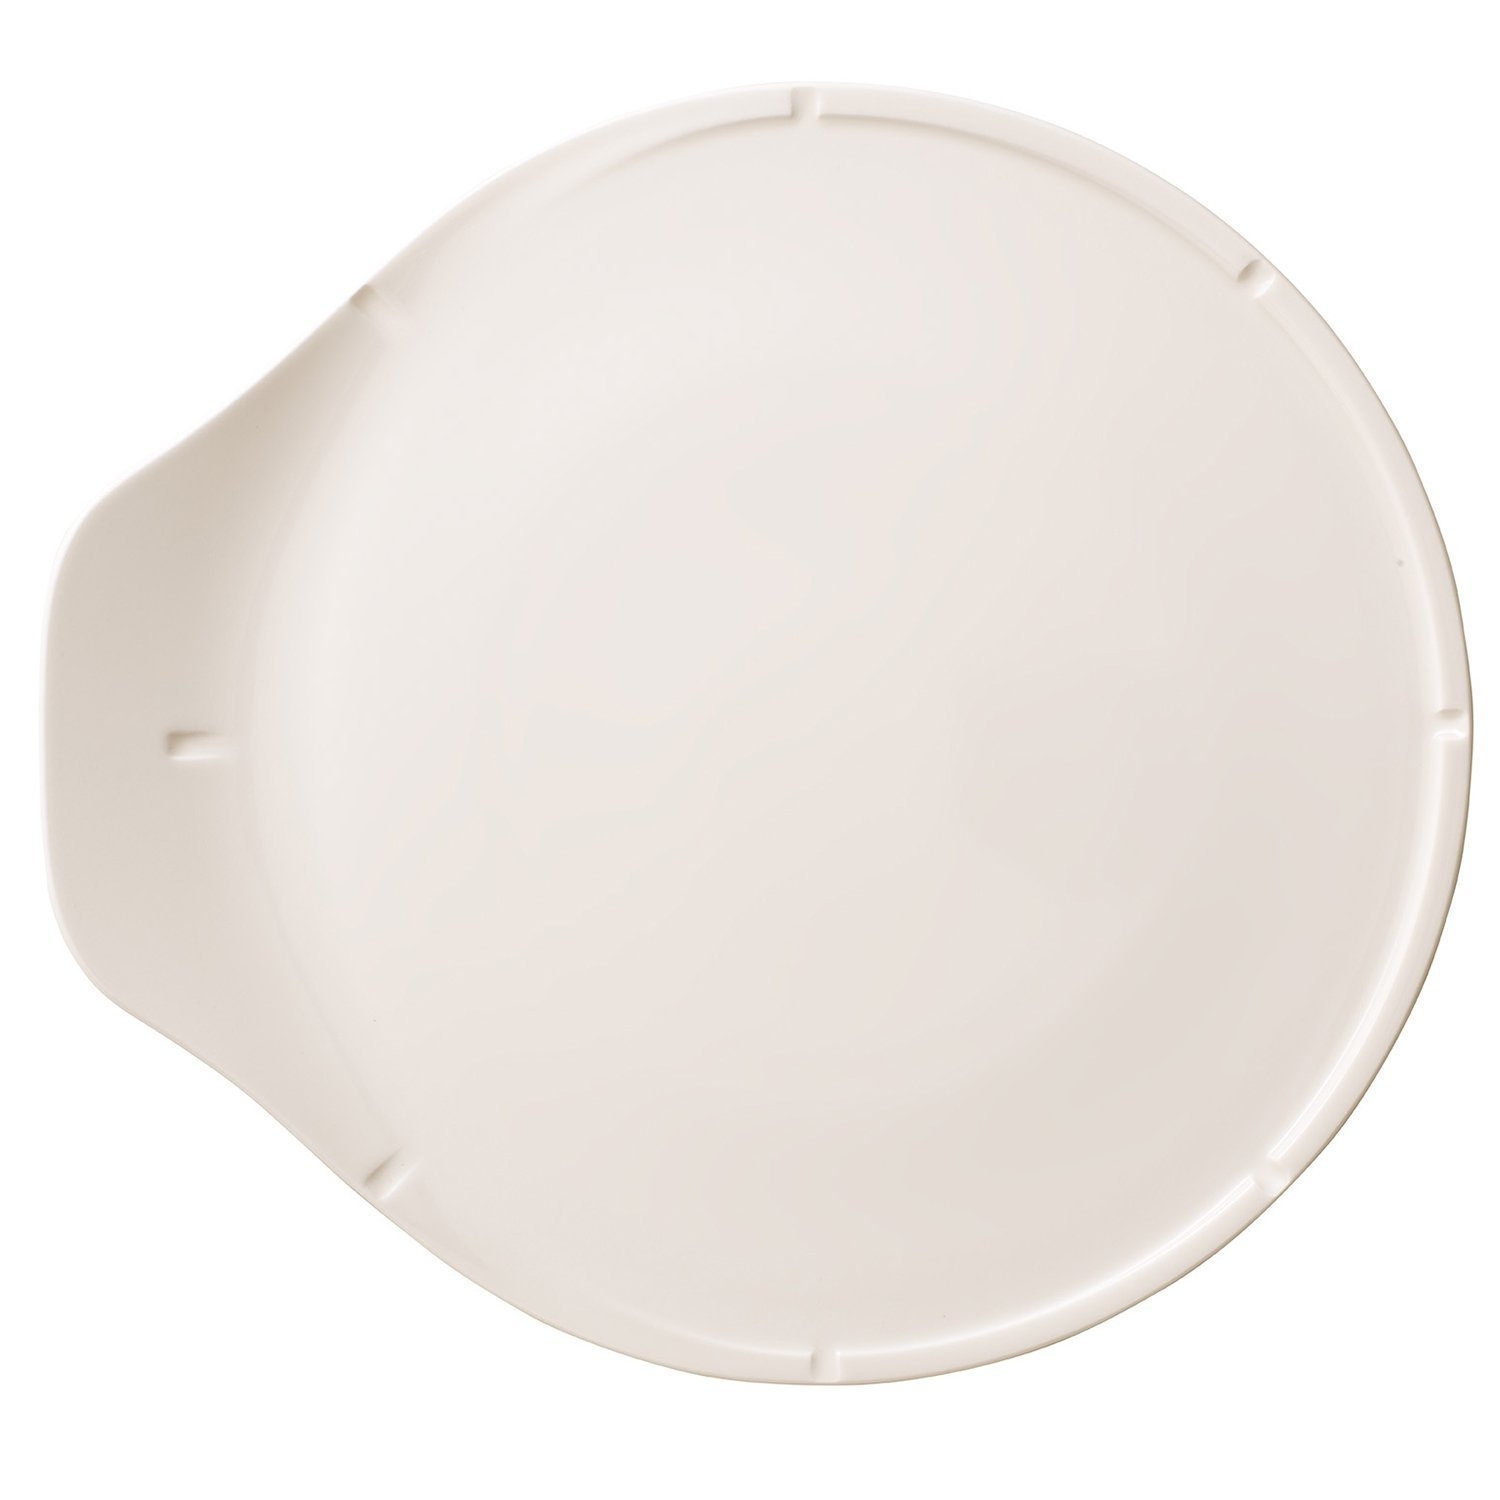 Pizza Passion Pizza Plate by Villeroy & Boch - Premium Porcelain - Made in Germany - Dishwasher and Microwave Safe - 14 .5 x 13.75 Inches